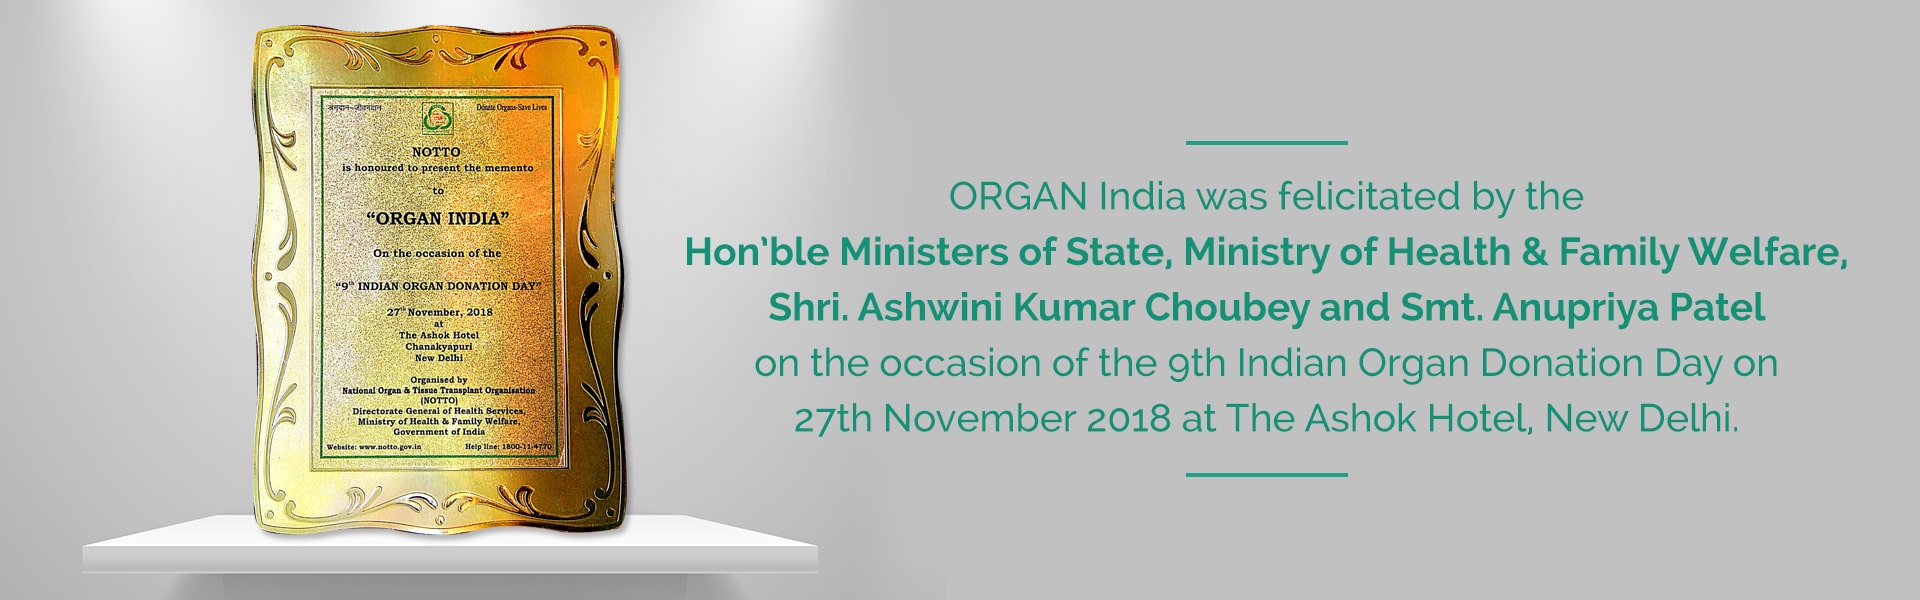 ORGAN India was facilitated on the occasion of Organ Donation day